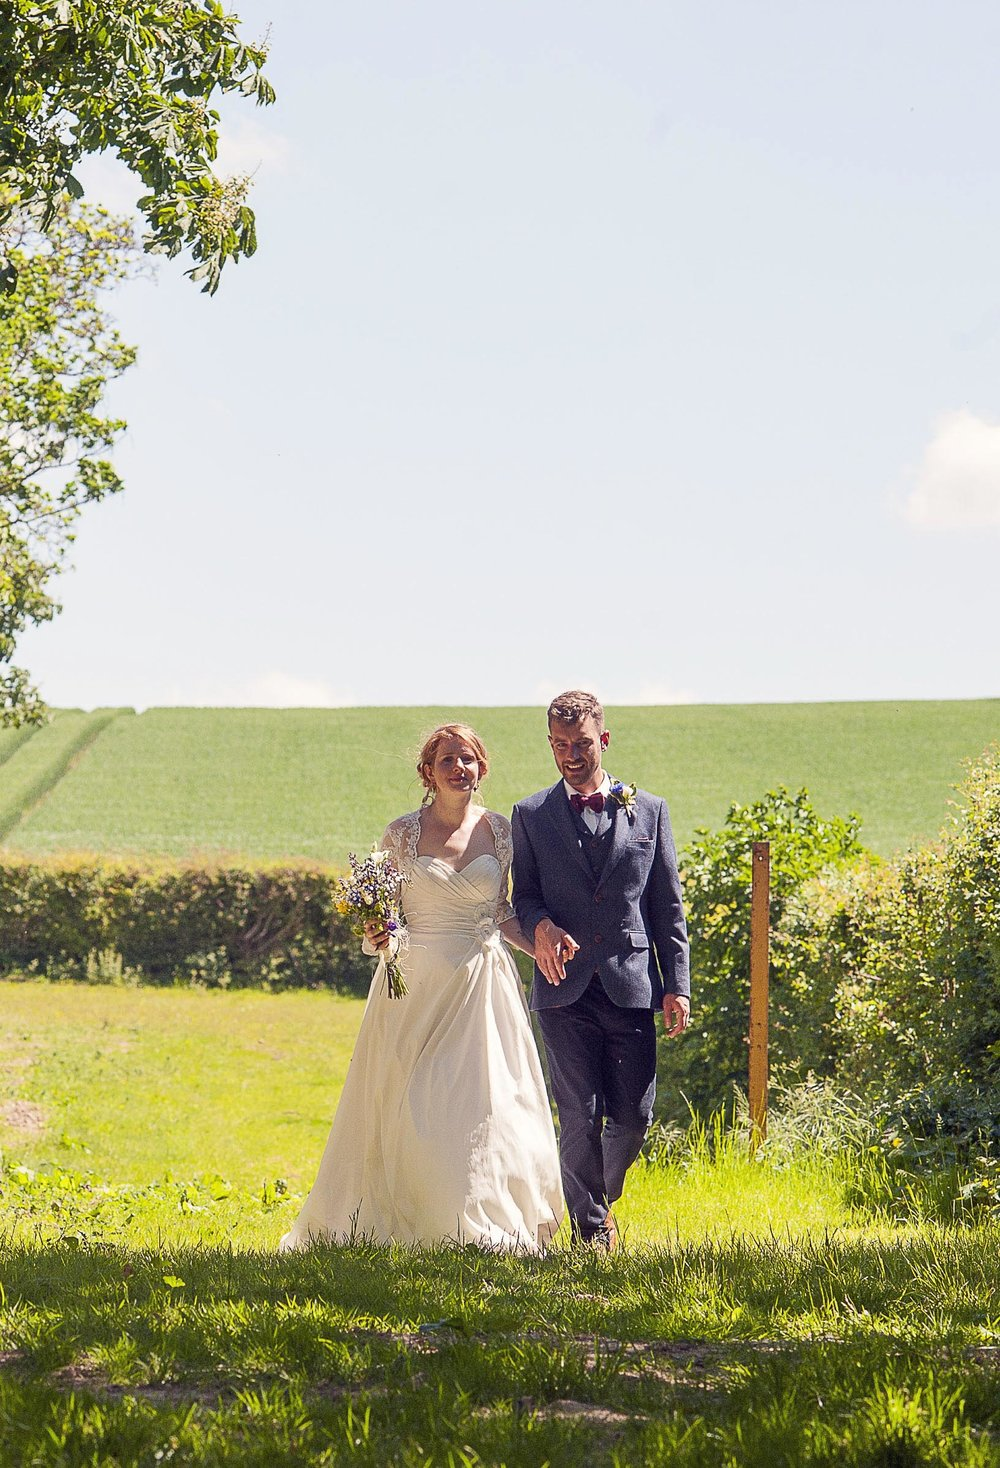 Wedding couple strolling through a summer field